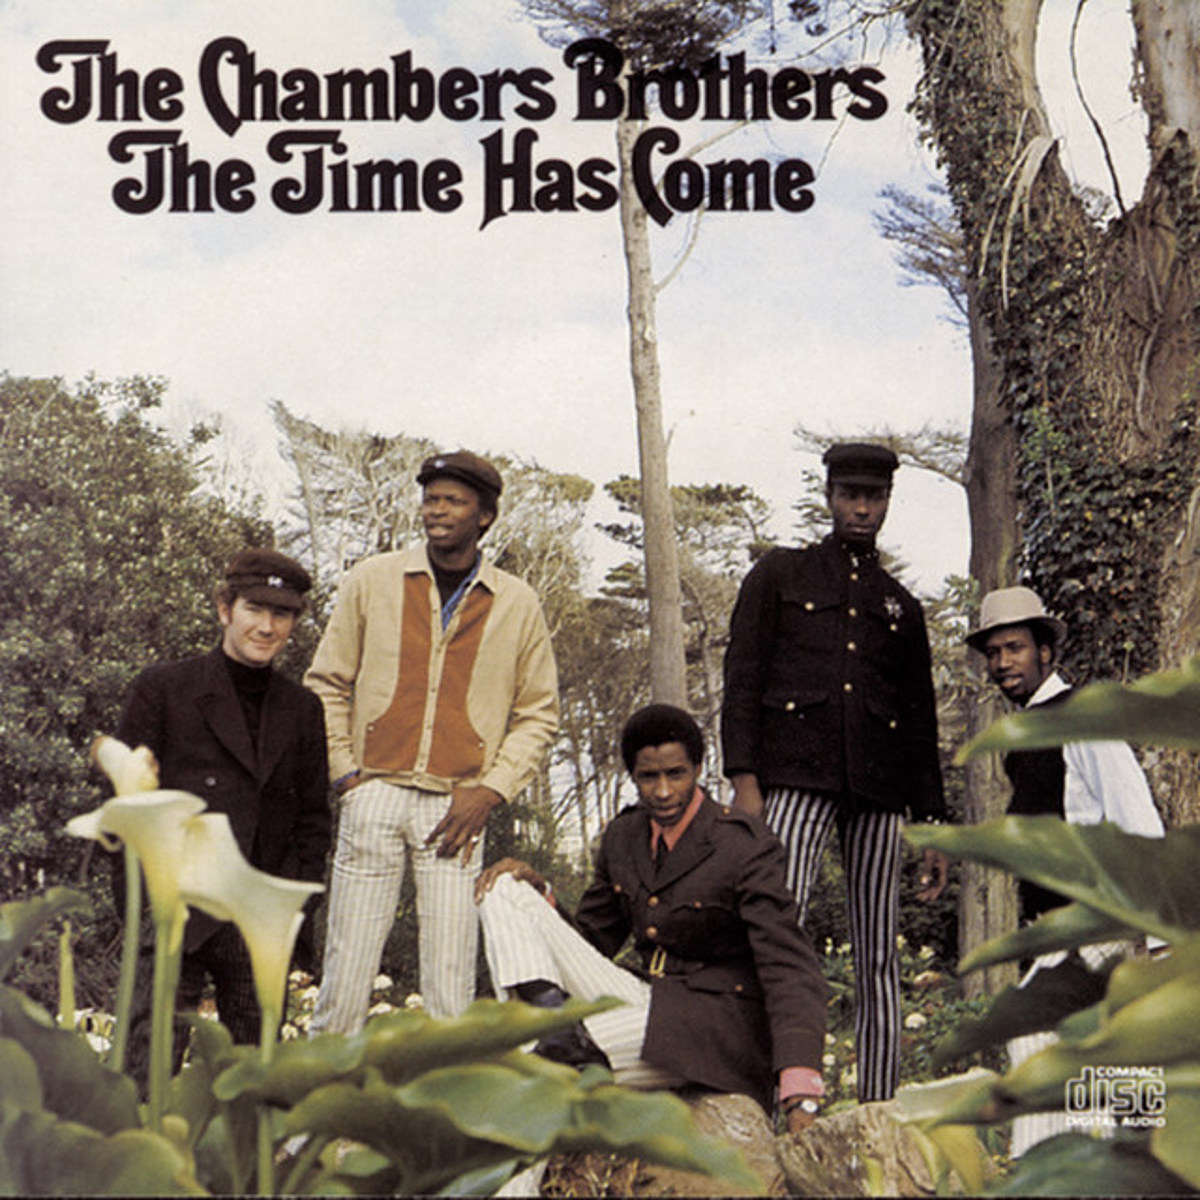 The Chambers Brothers' George Chambers, RIP